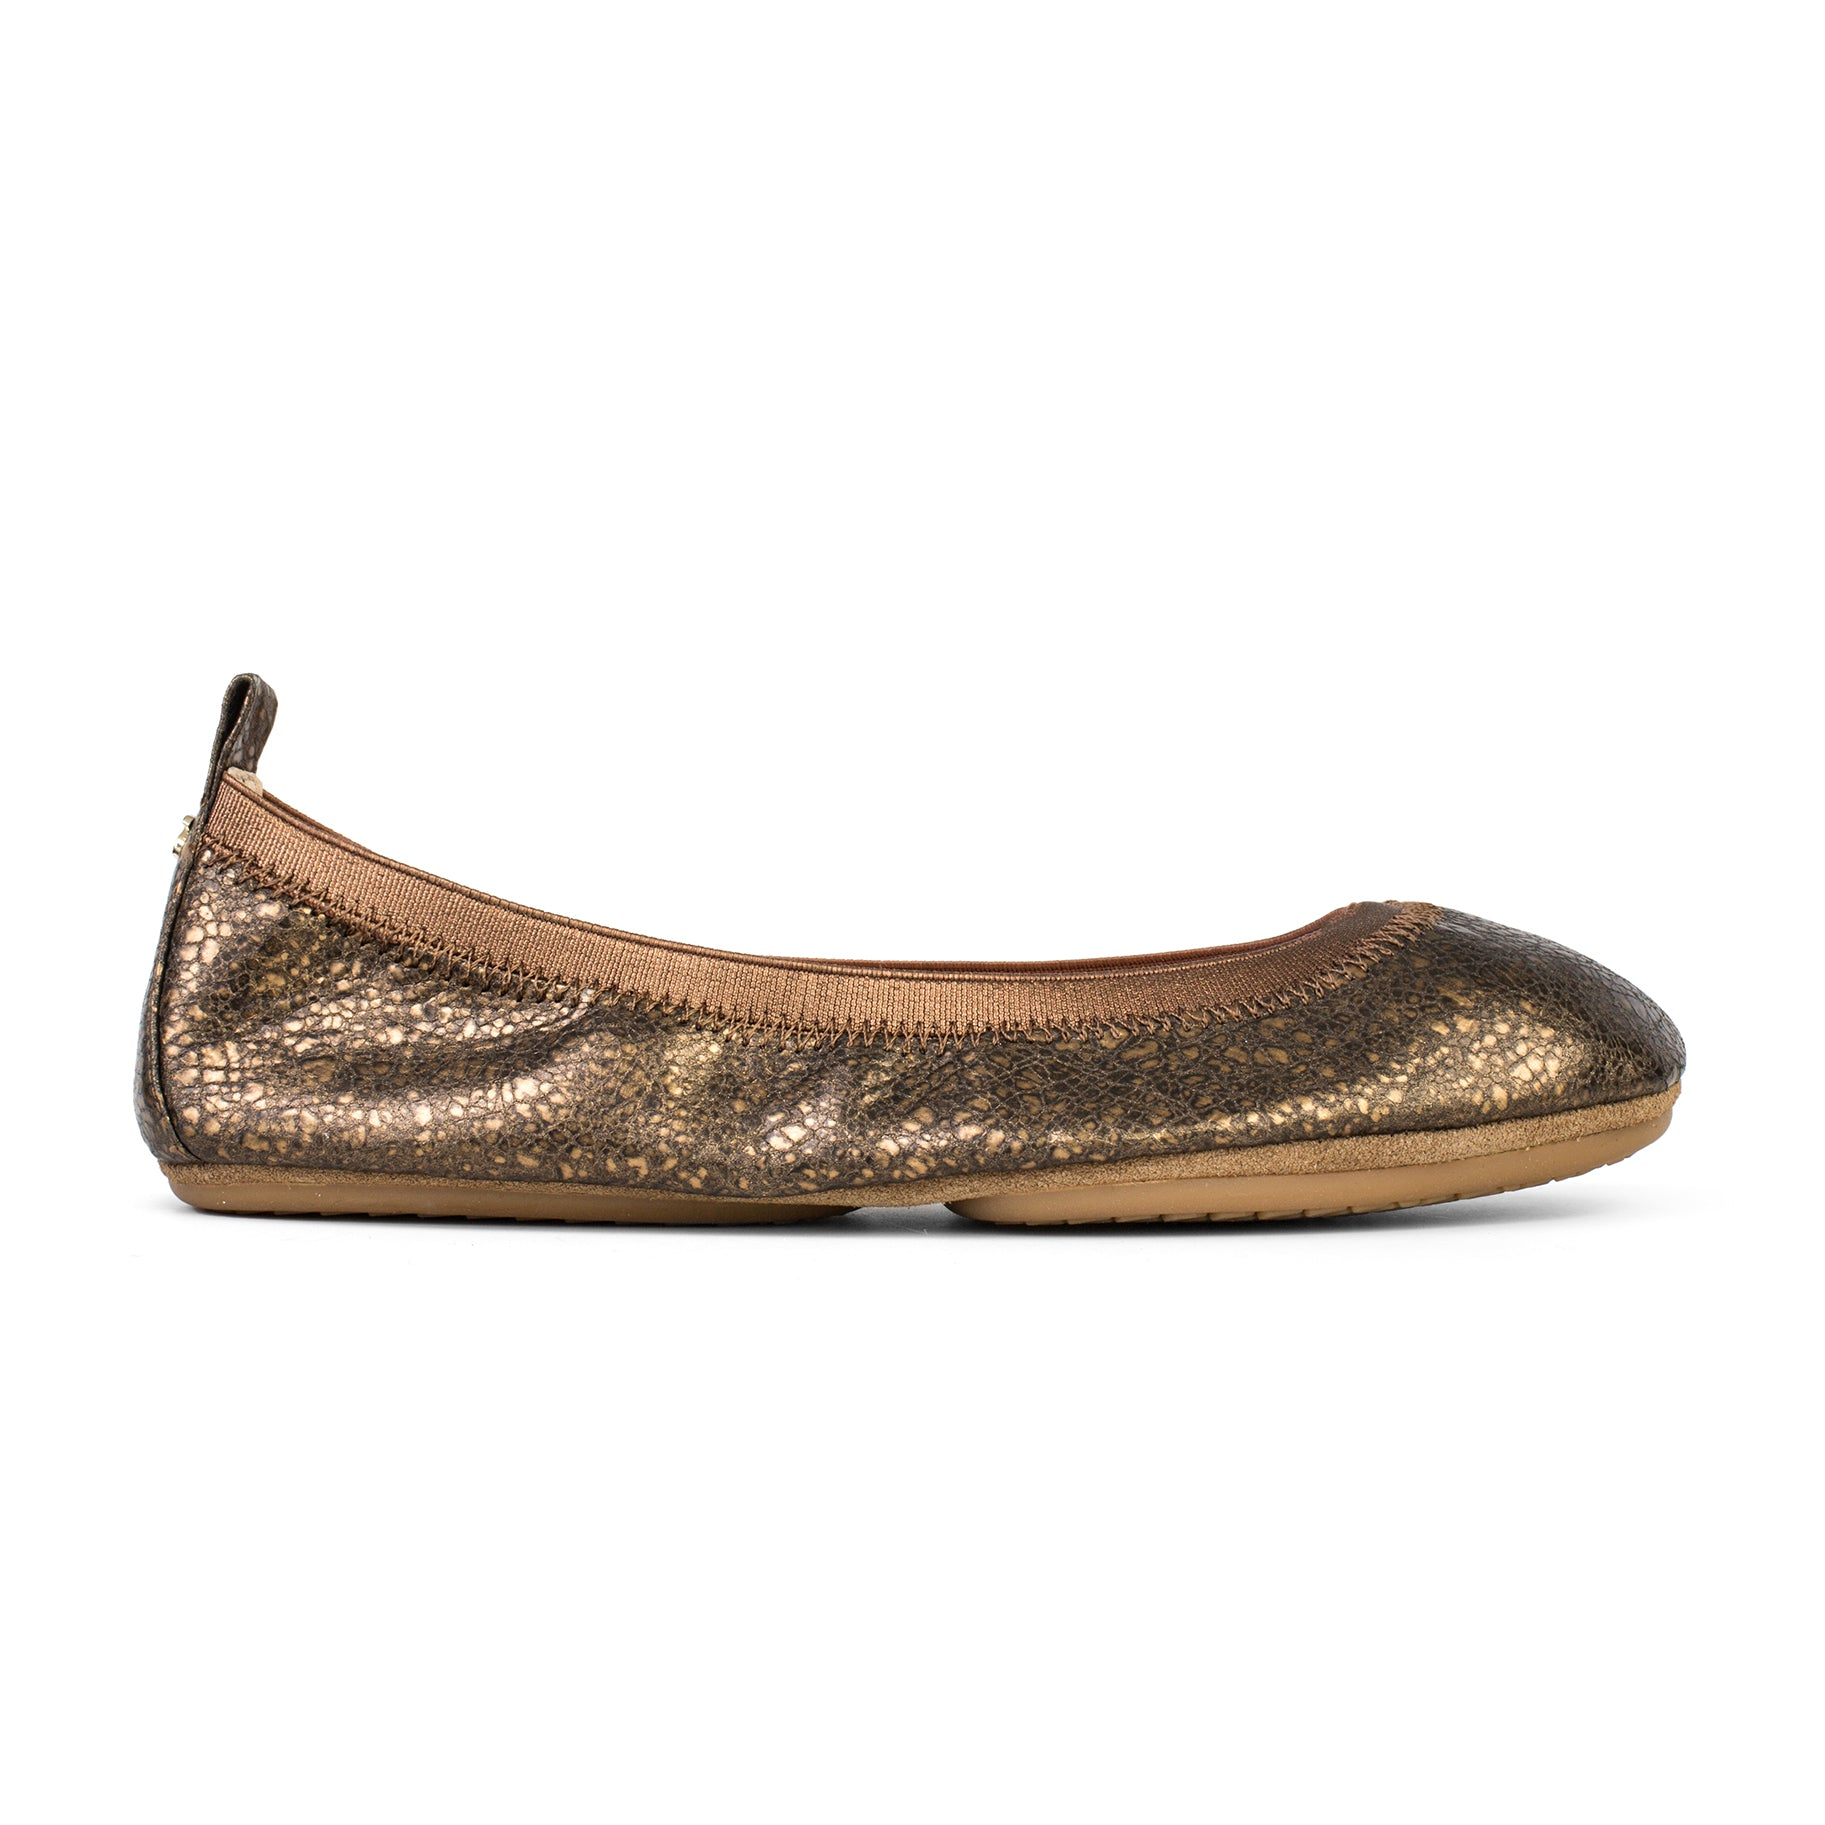 yosi samra bronze muted metallic leather ballet flat